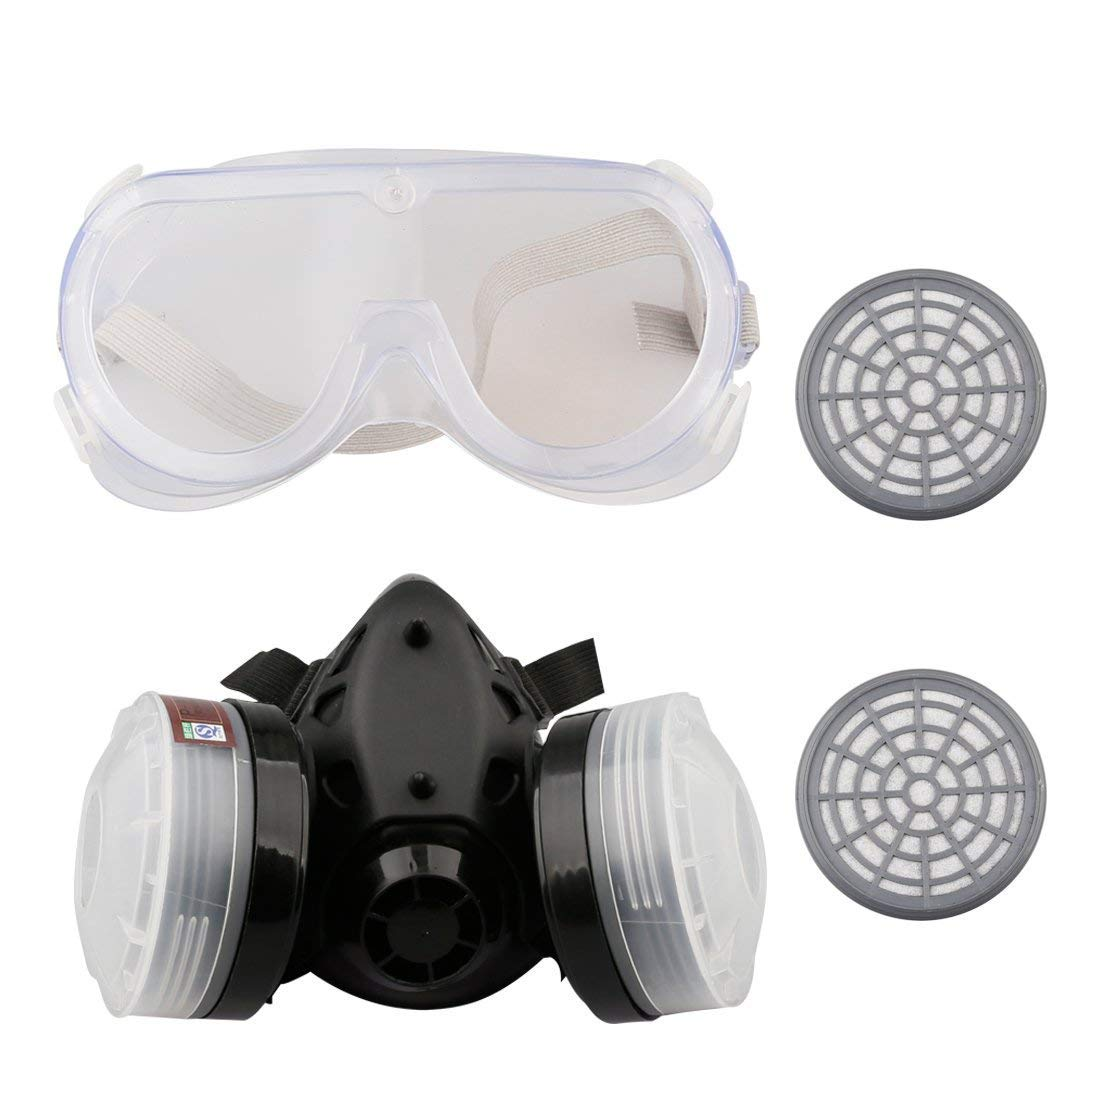 Reusable Respirator Antigas Mask,Painting Chemical Anti Dust Mask Respirator,with 2 PCS Extra Filters